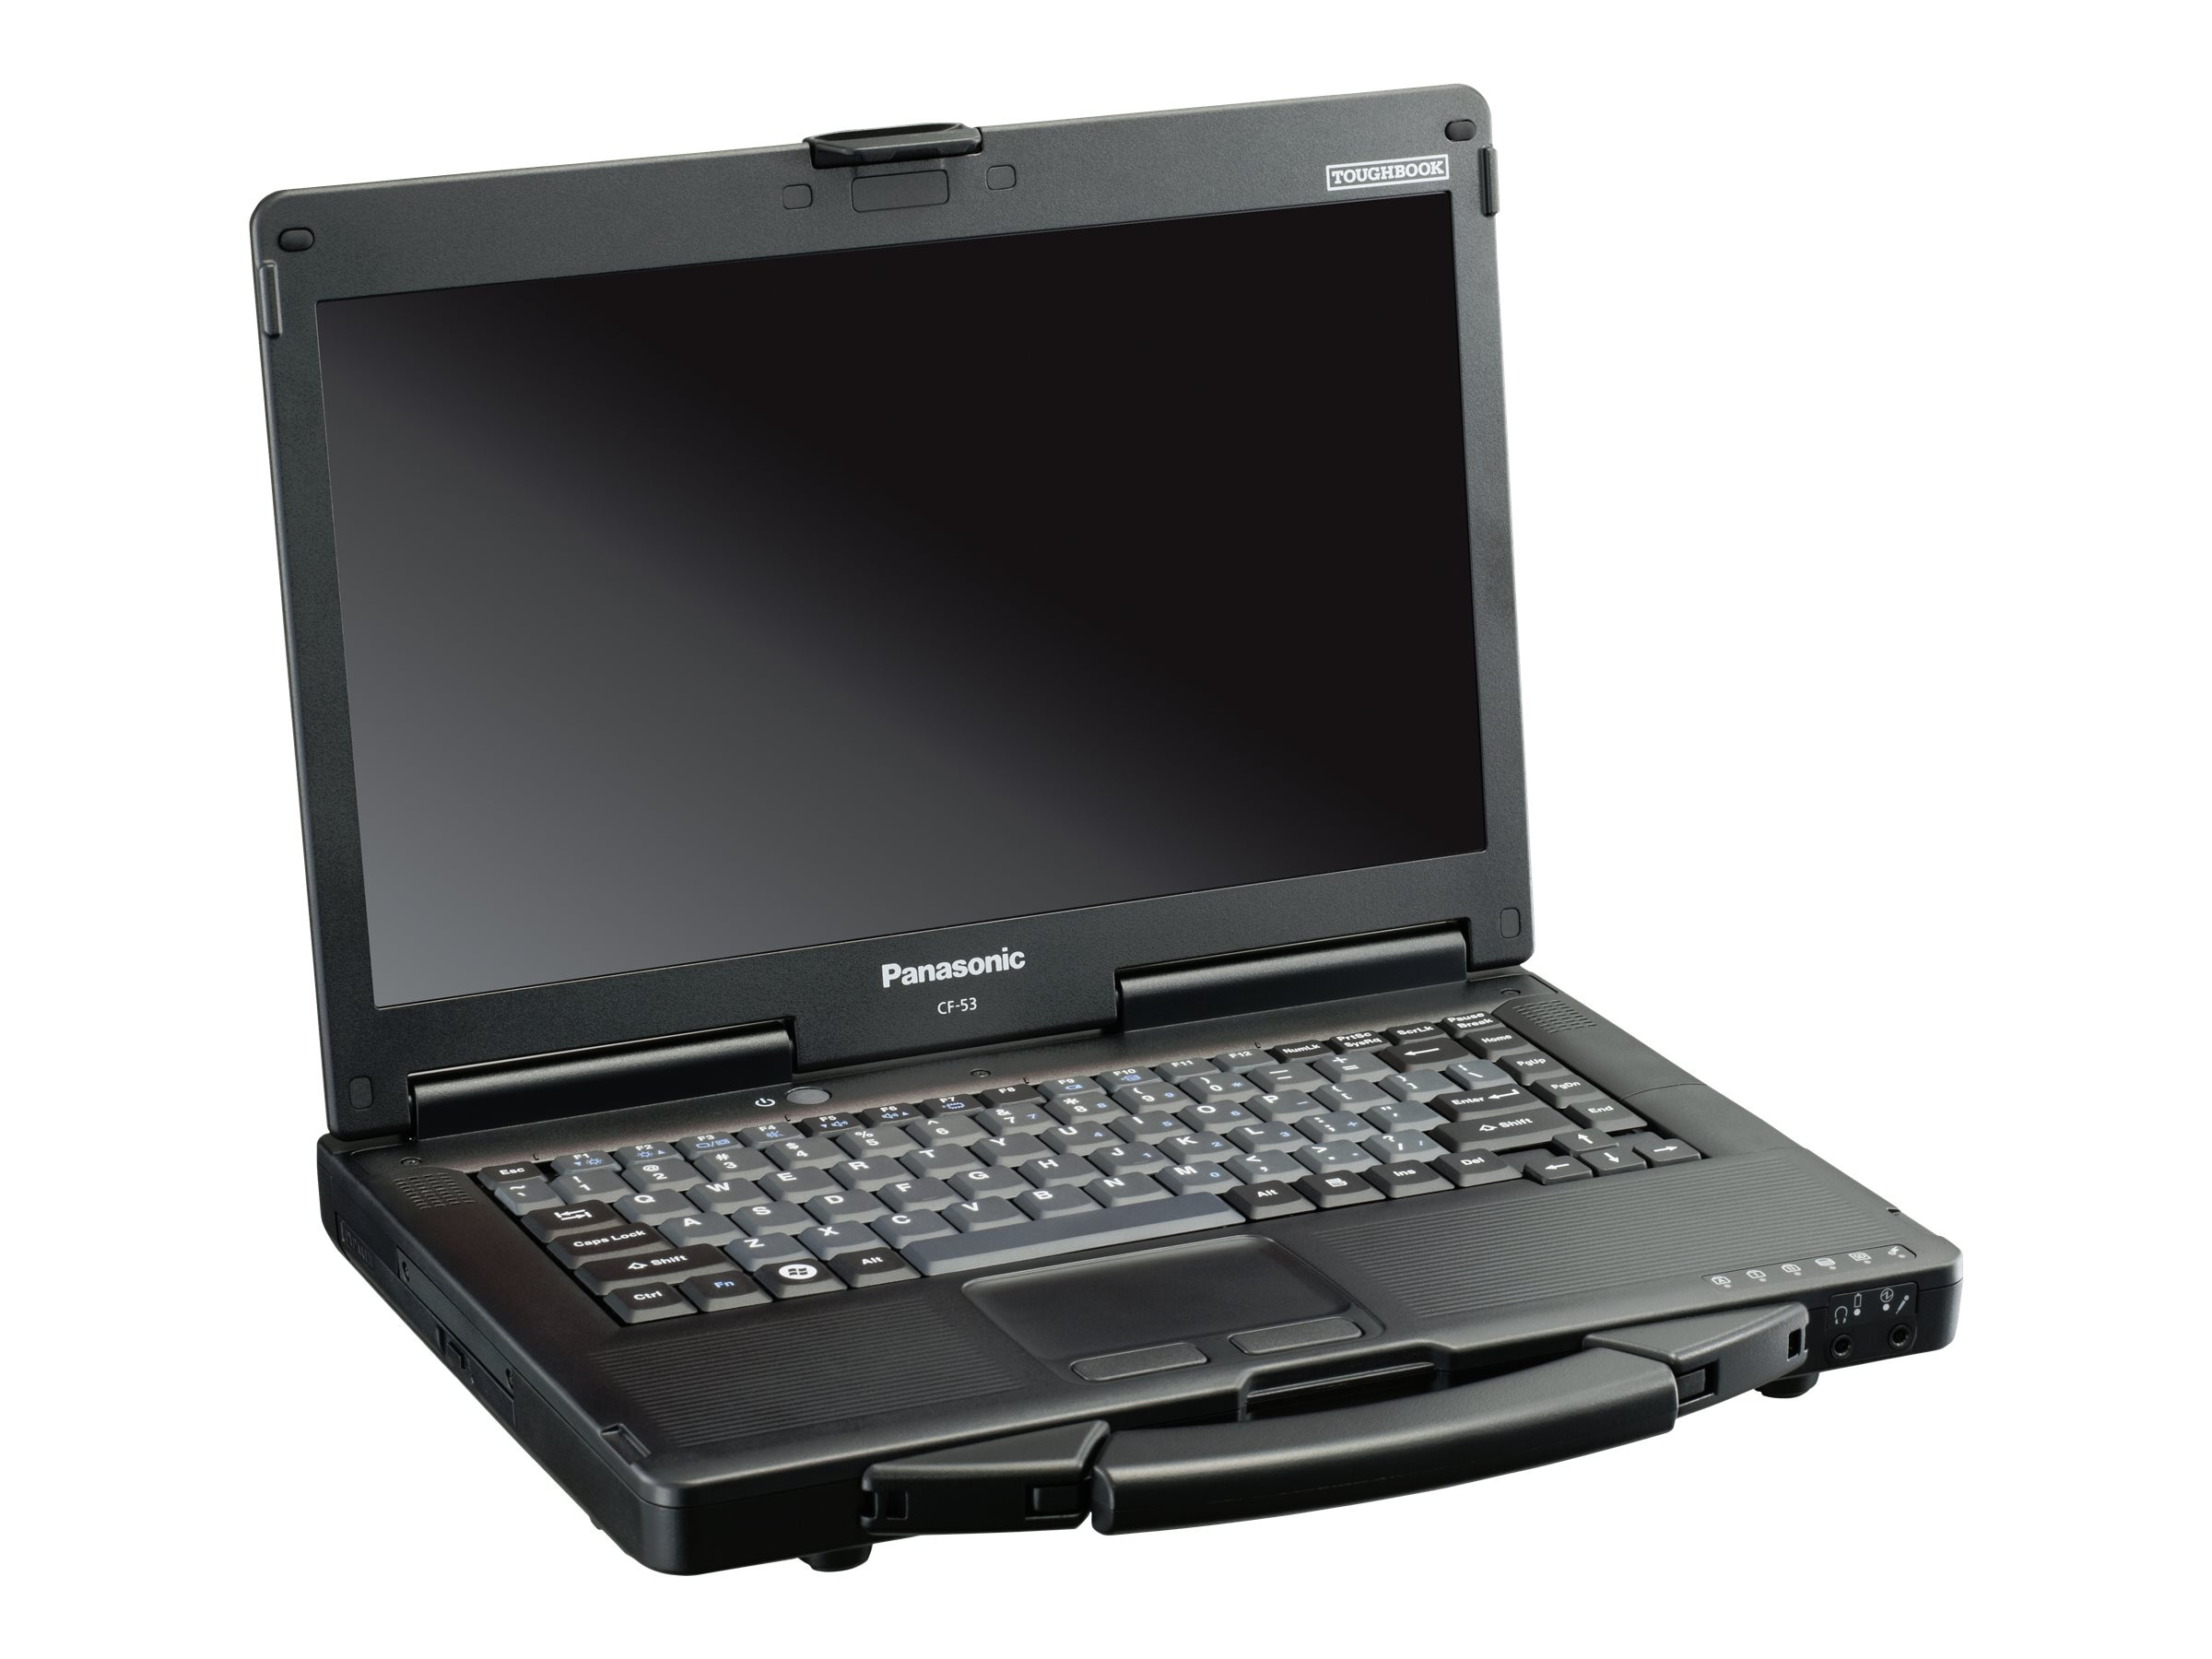 Panasonic Toughbook 53 2GHz Core i5 14in display, CF-532SUZ8NM